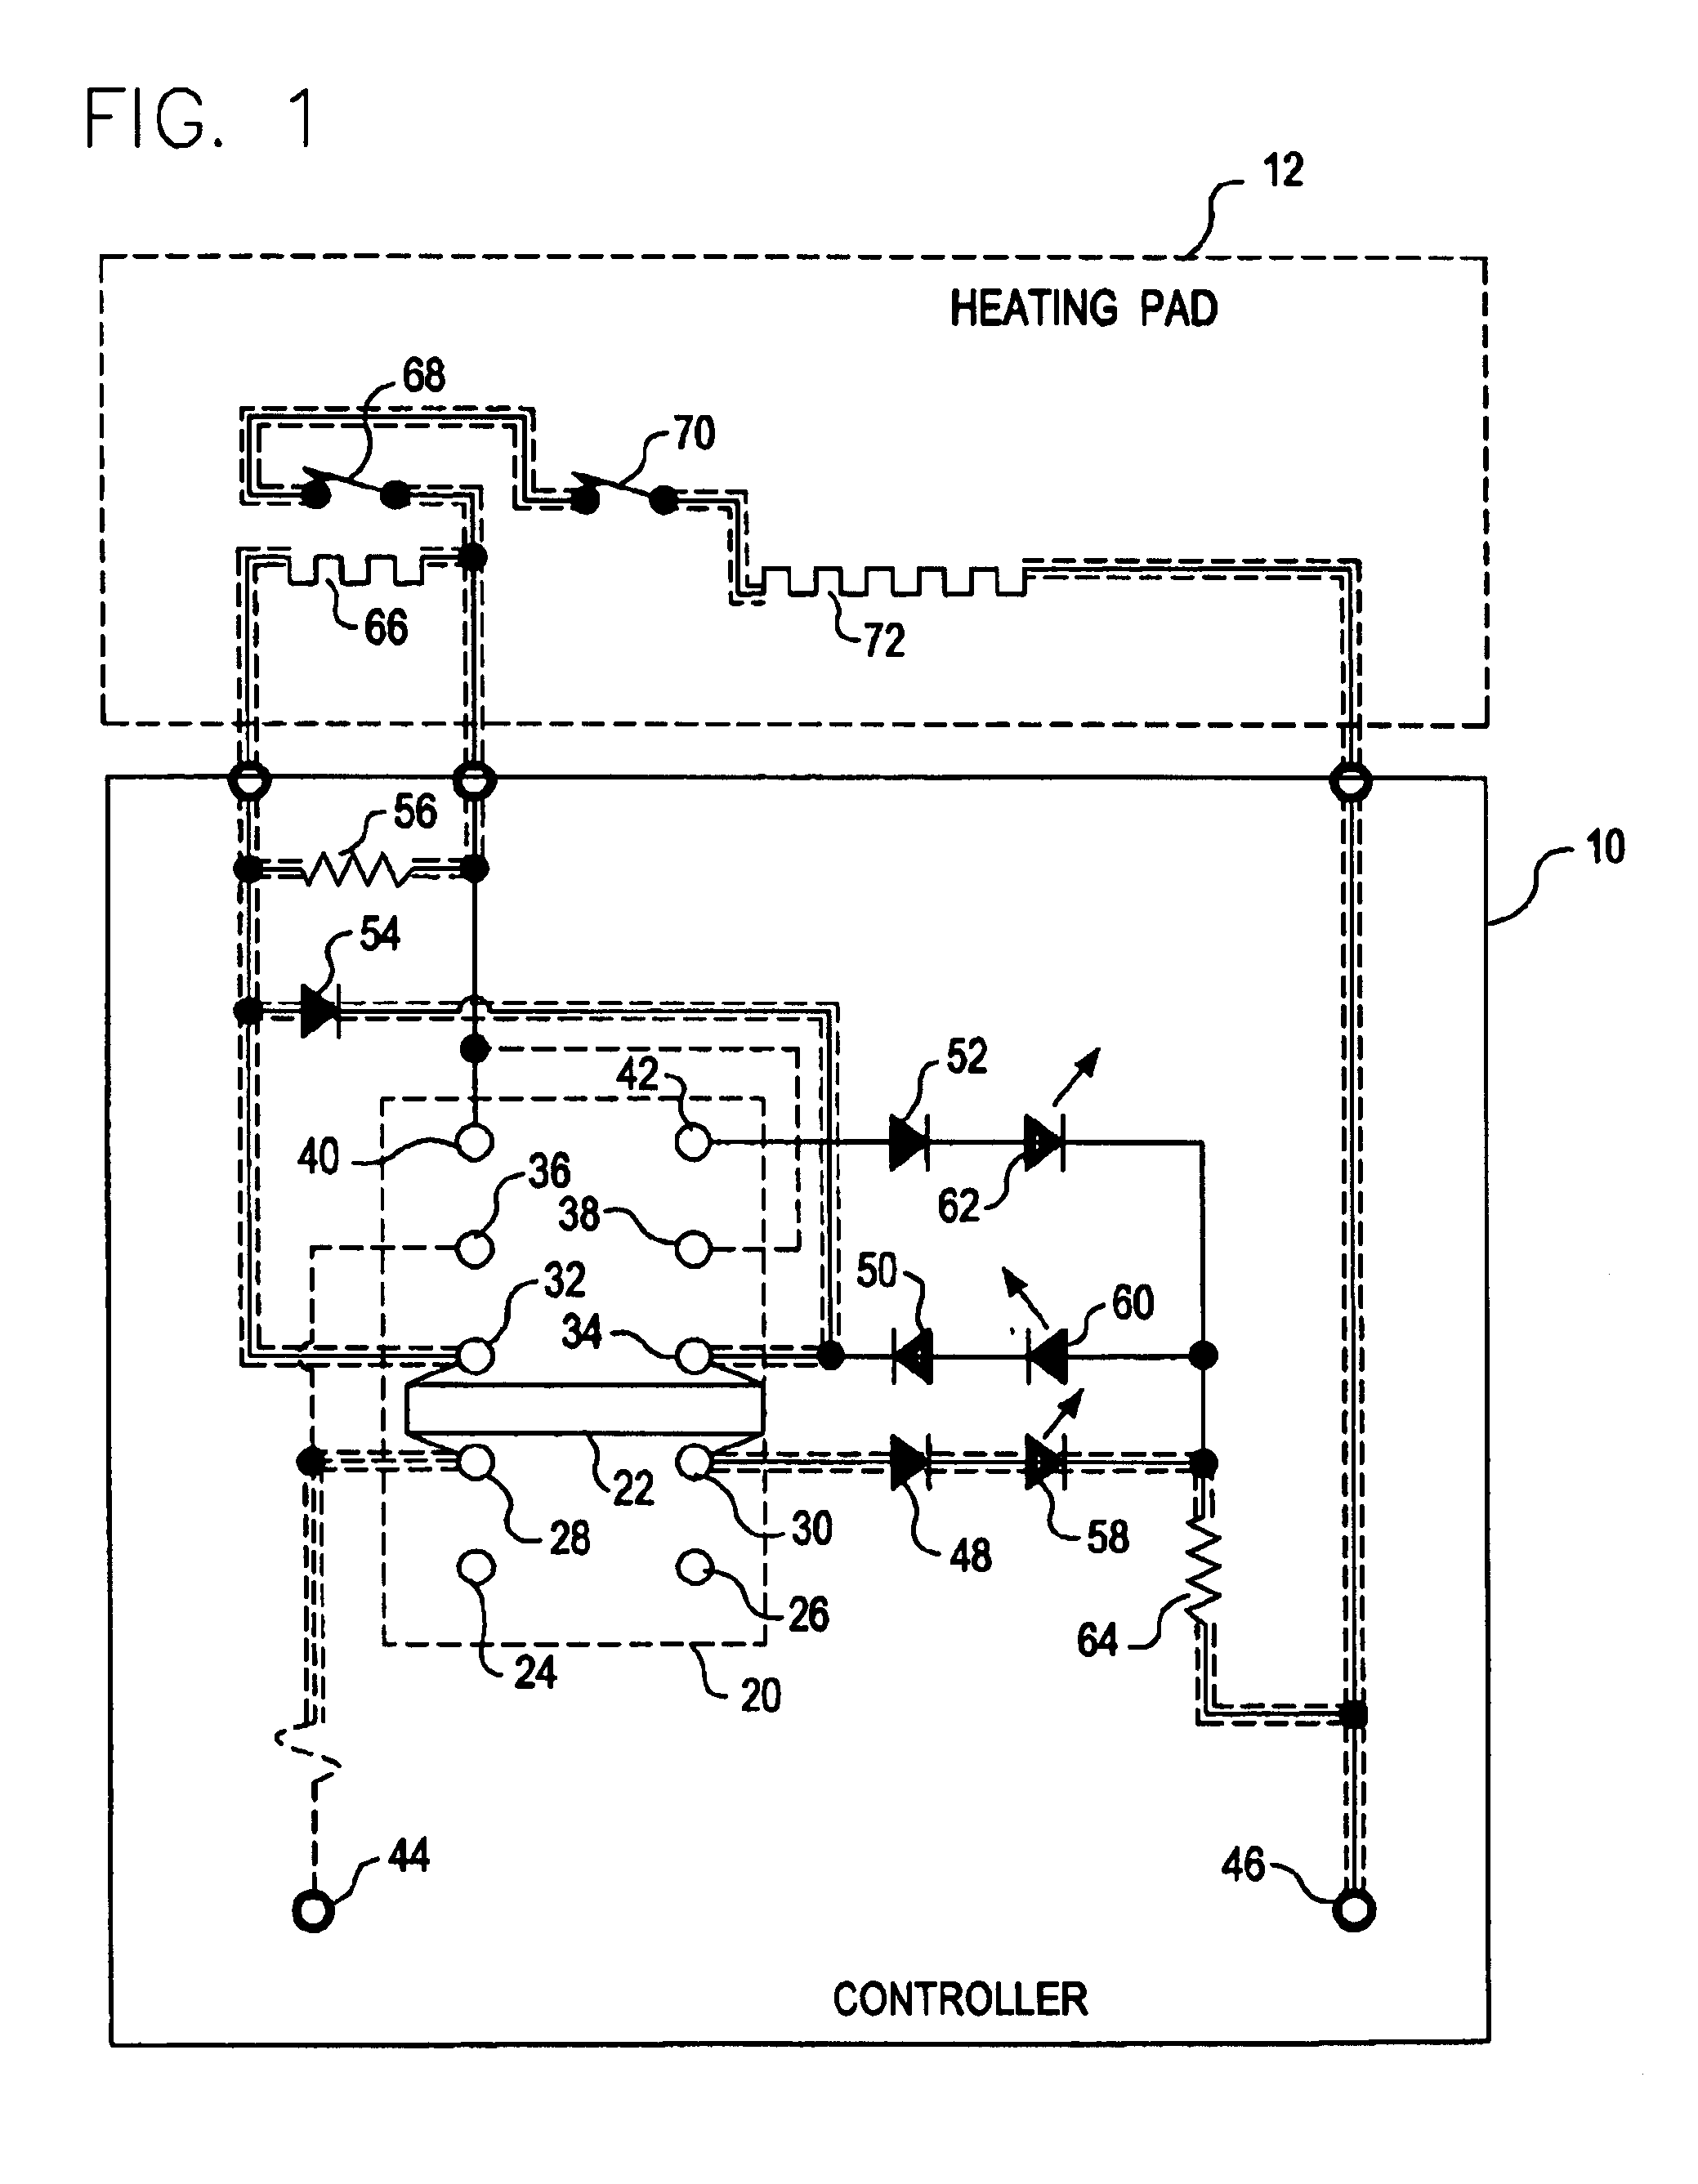 US06884973 20050426 D00001 patent us6884973 heating pad controller with multiple position Simple Wiring Schematics at crackthecode.co